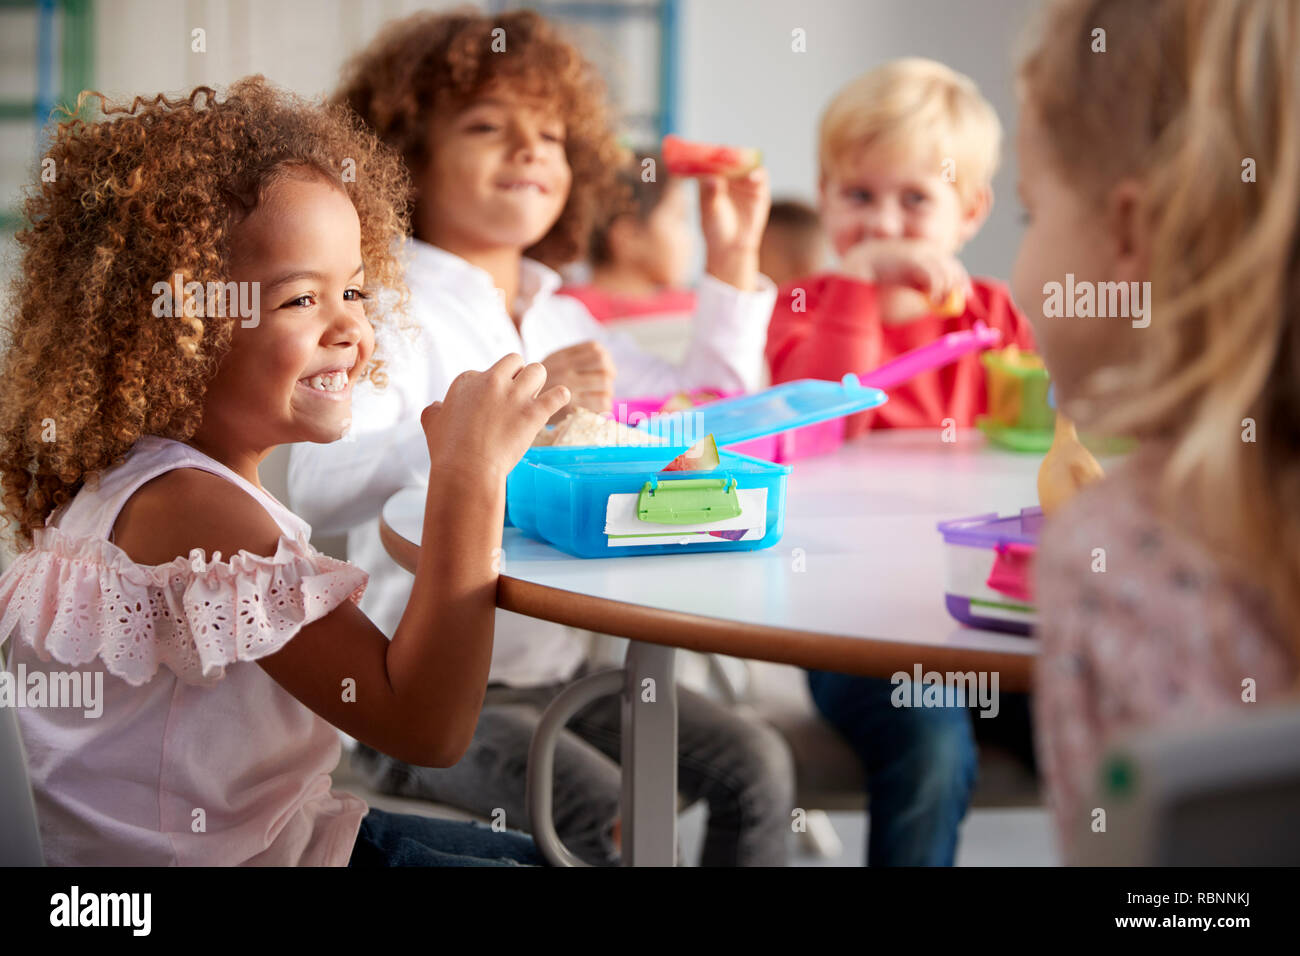 Close up of smiling young children sitting at a table eating their packed lunches together at infant school, selective focus Stock Photo